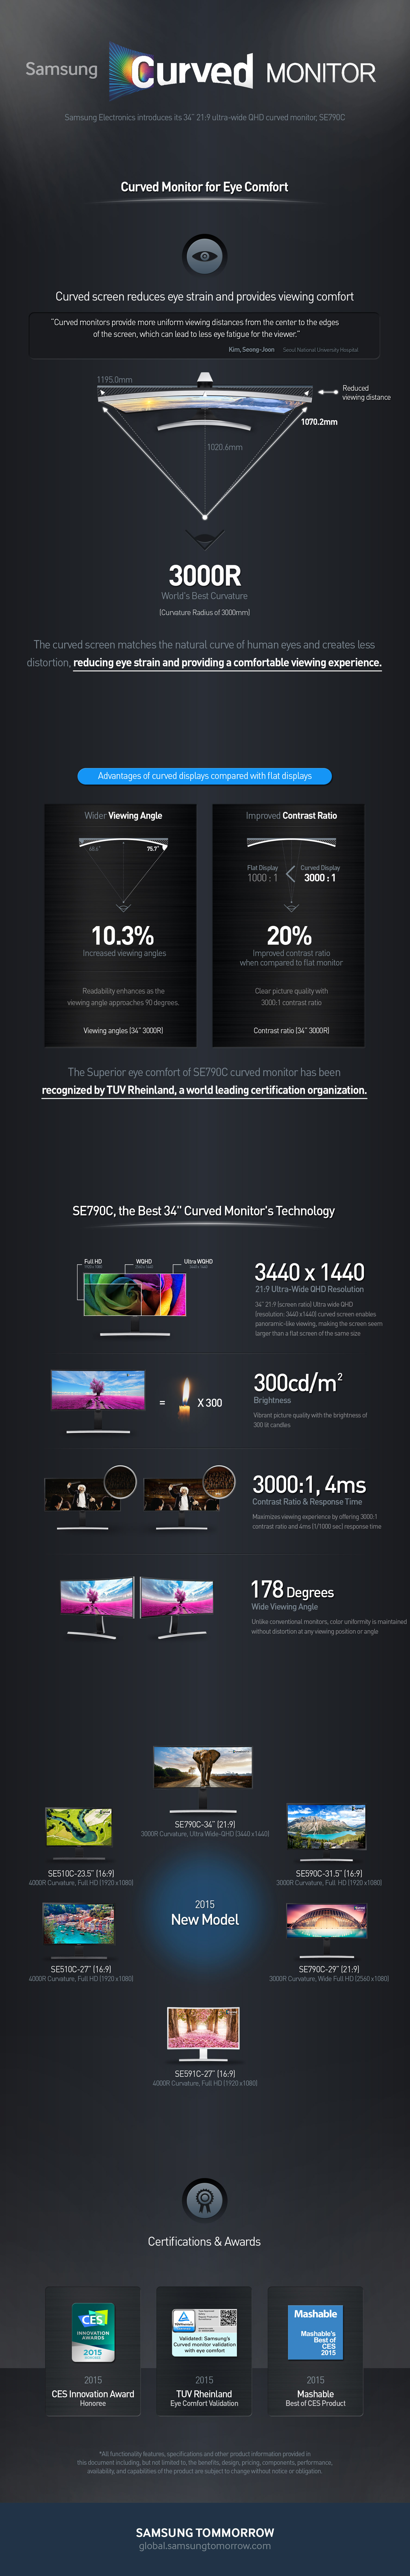 [Infographic] Samsung Curved Monitor: Curves That Are Easy on the Eyes